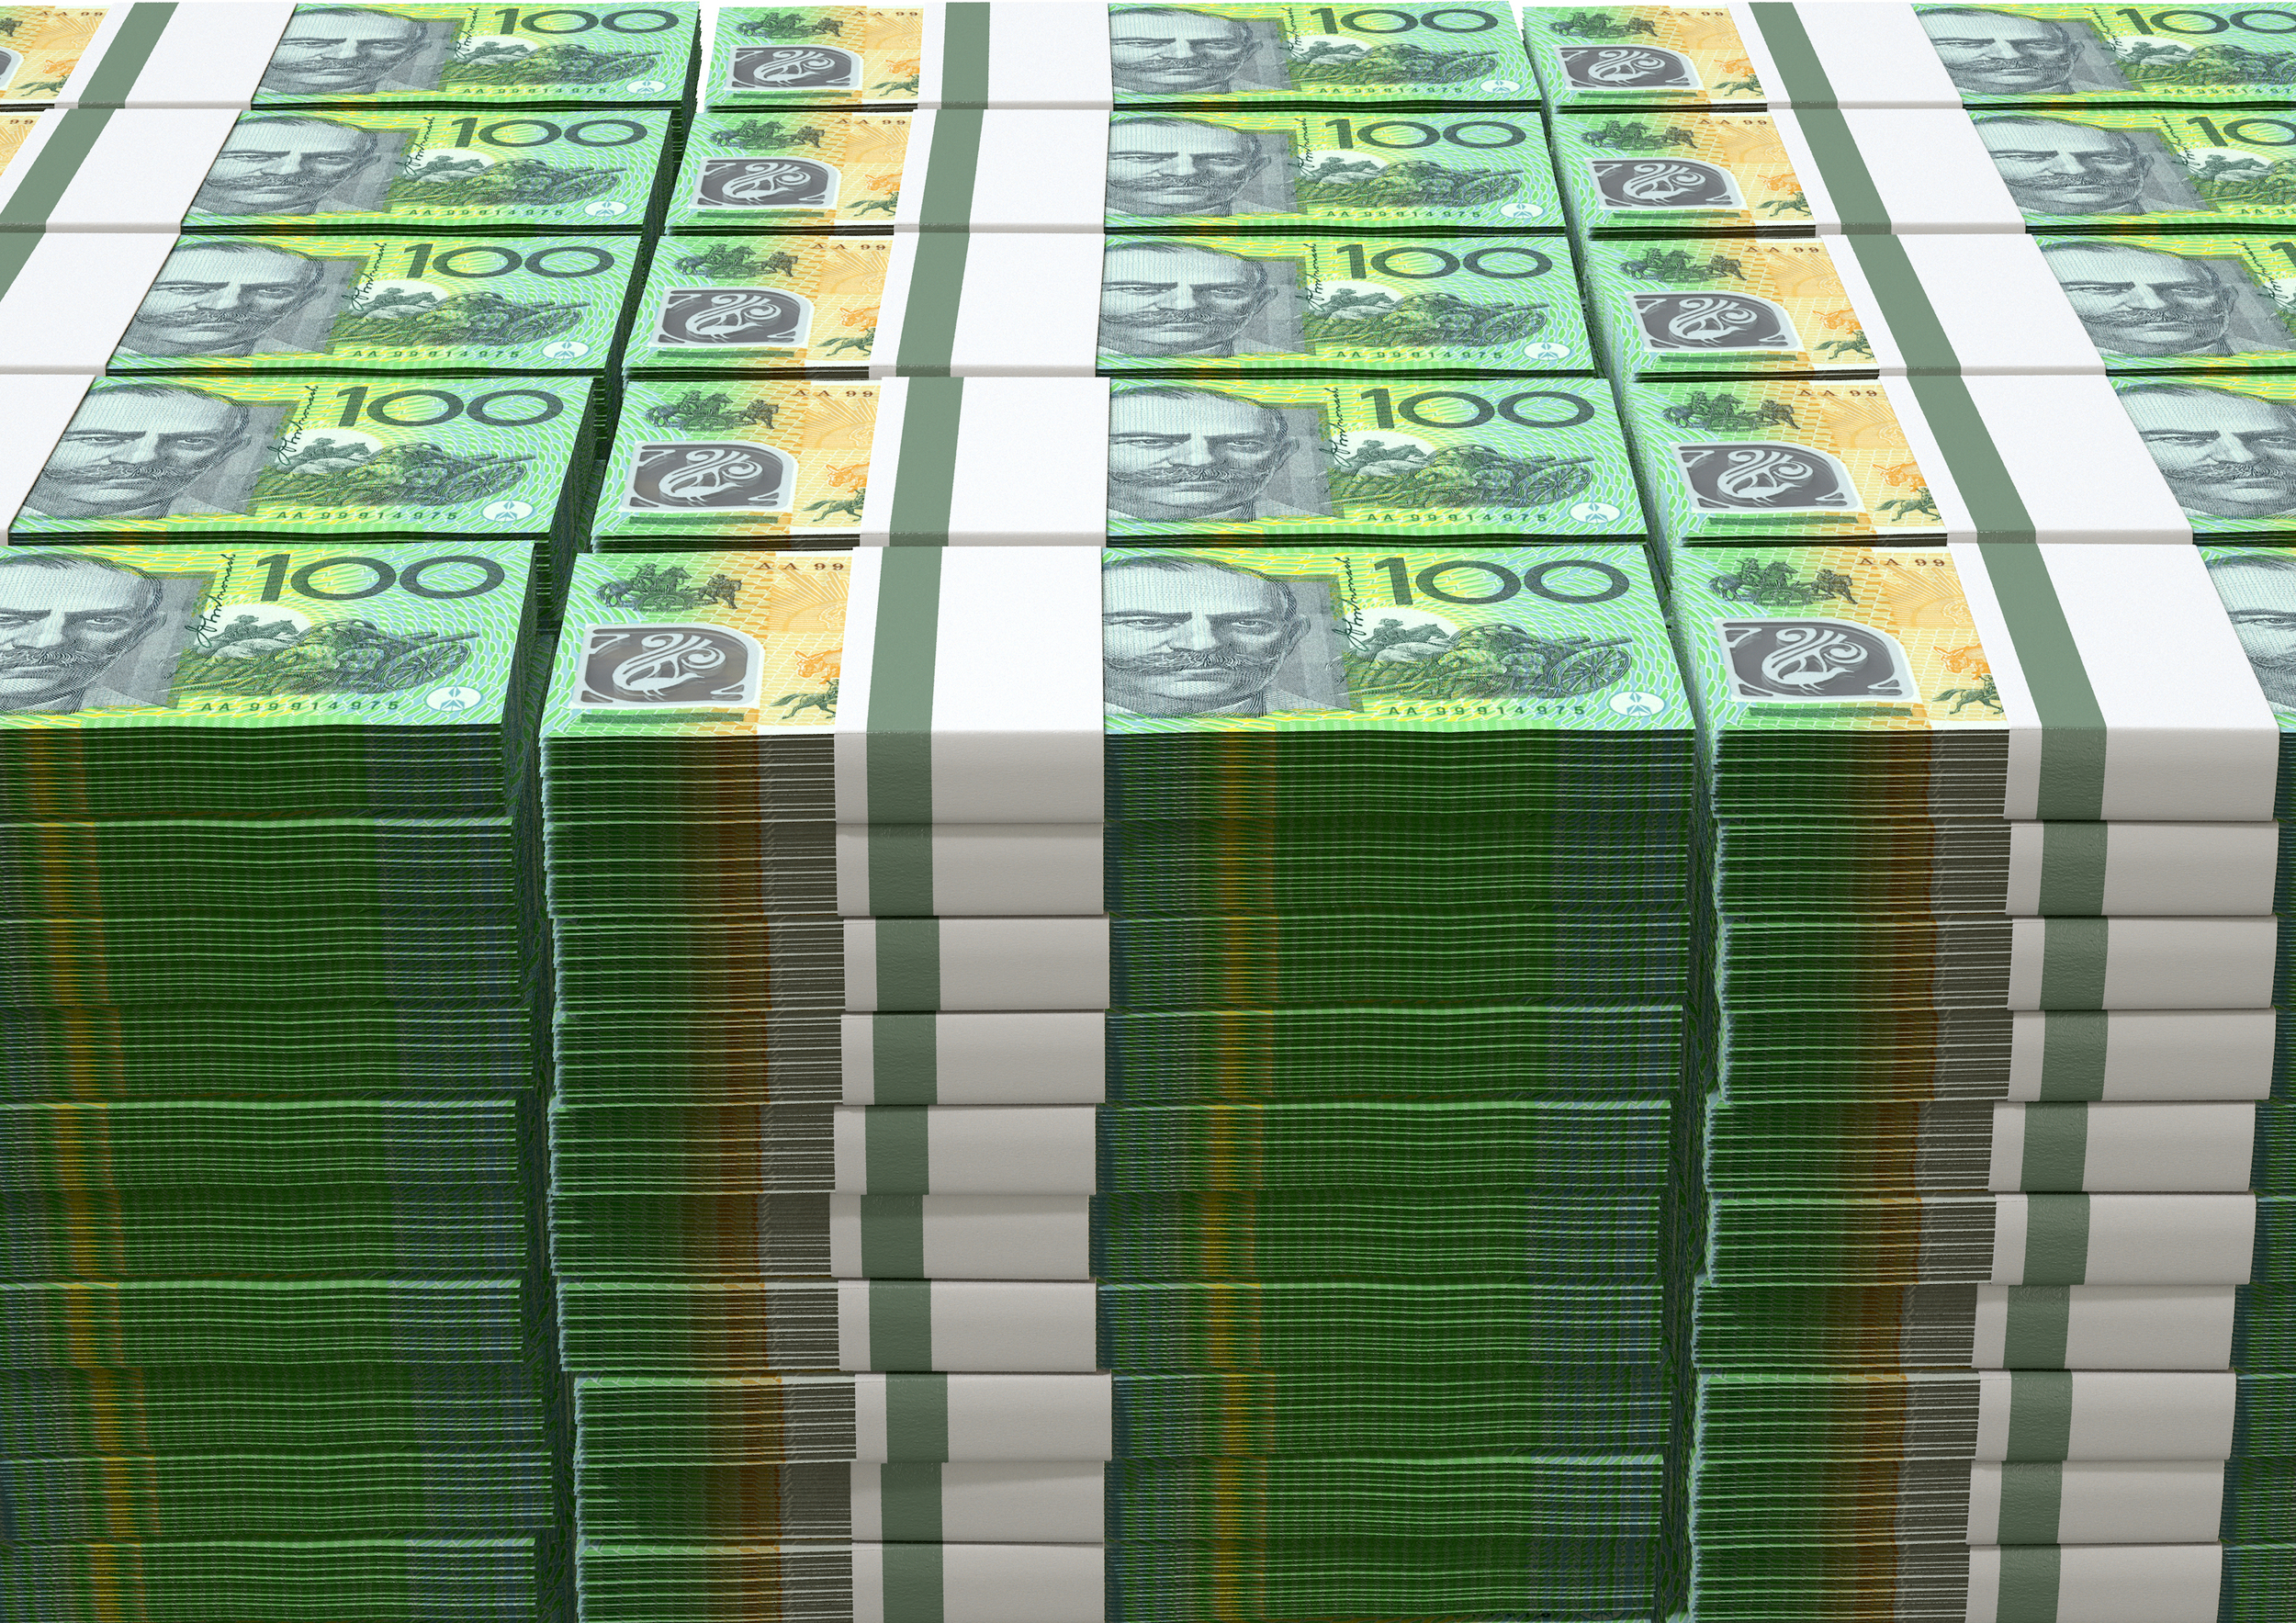 9 million dollars to be returned to federal government